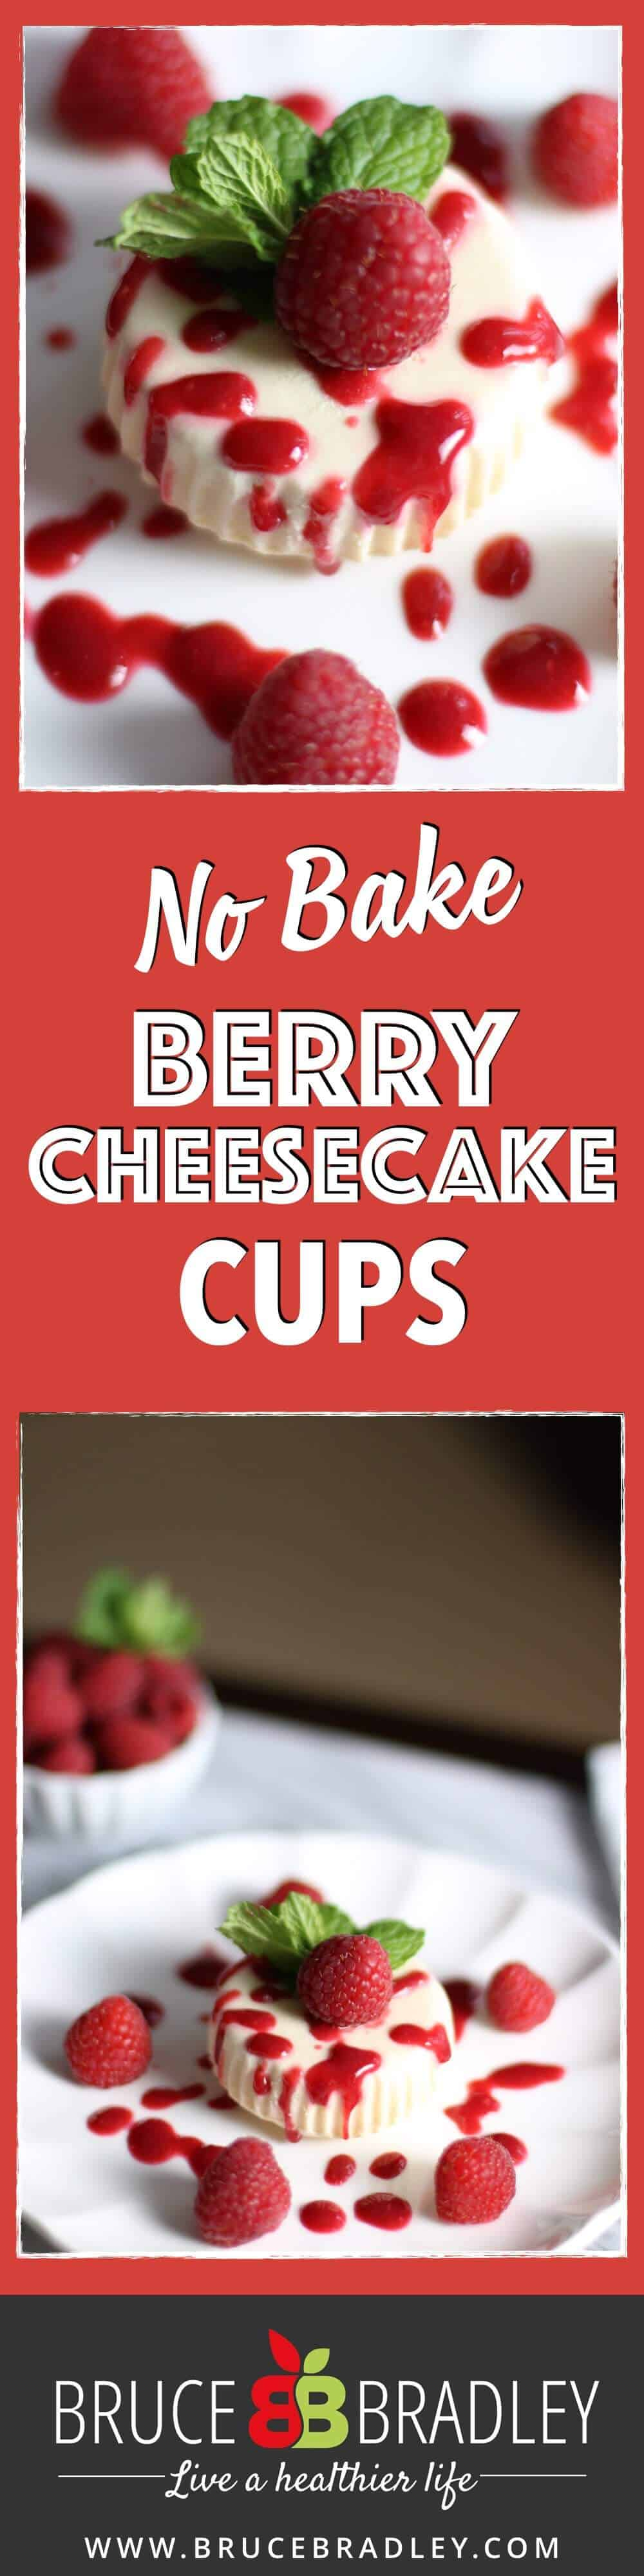 These easy, No-bake Cheesecake Cups with Berries are a deliciously cool way to get all the taste of cheesecake with none of the fuss!